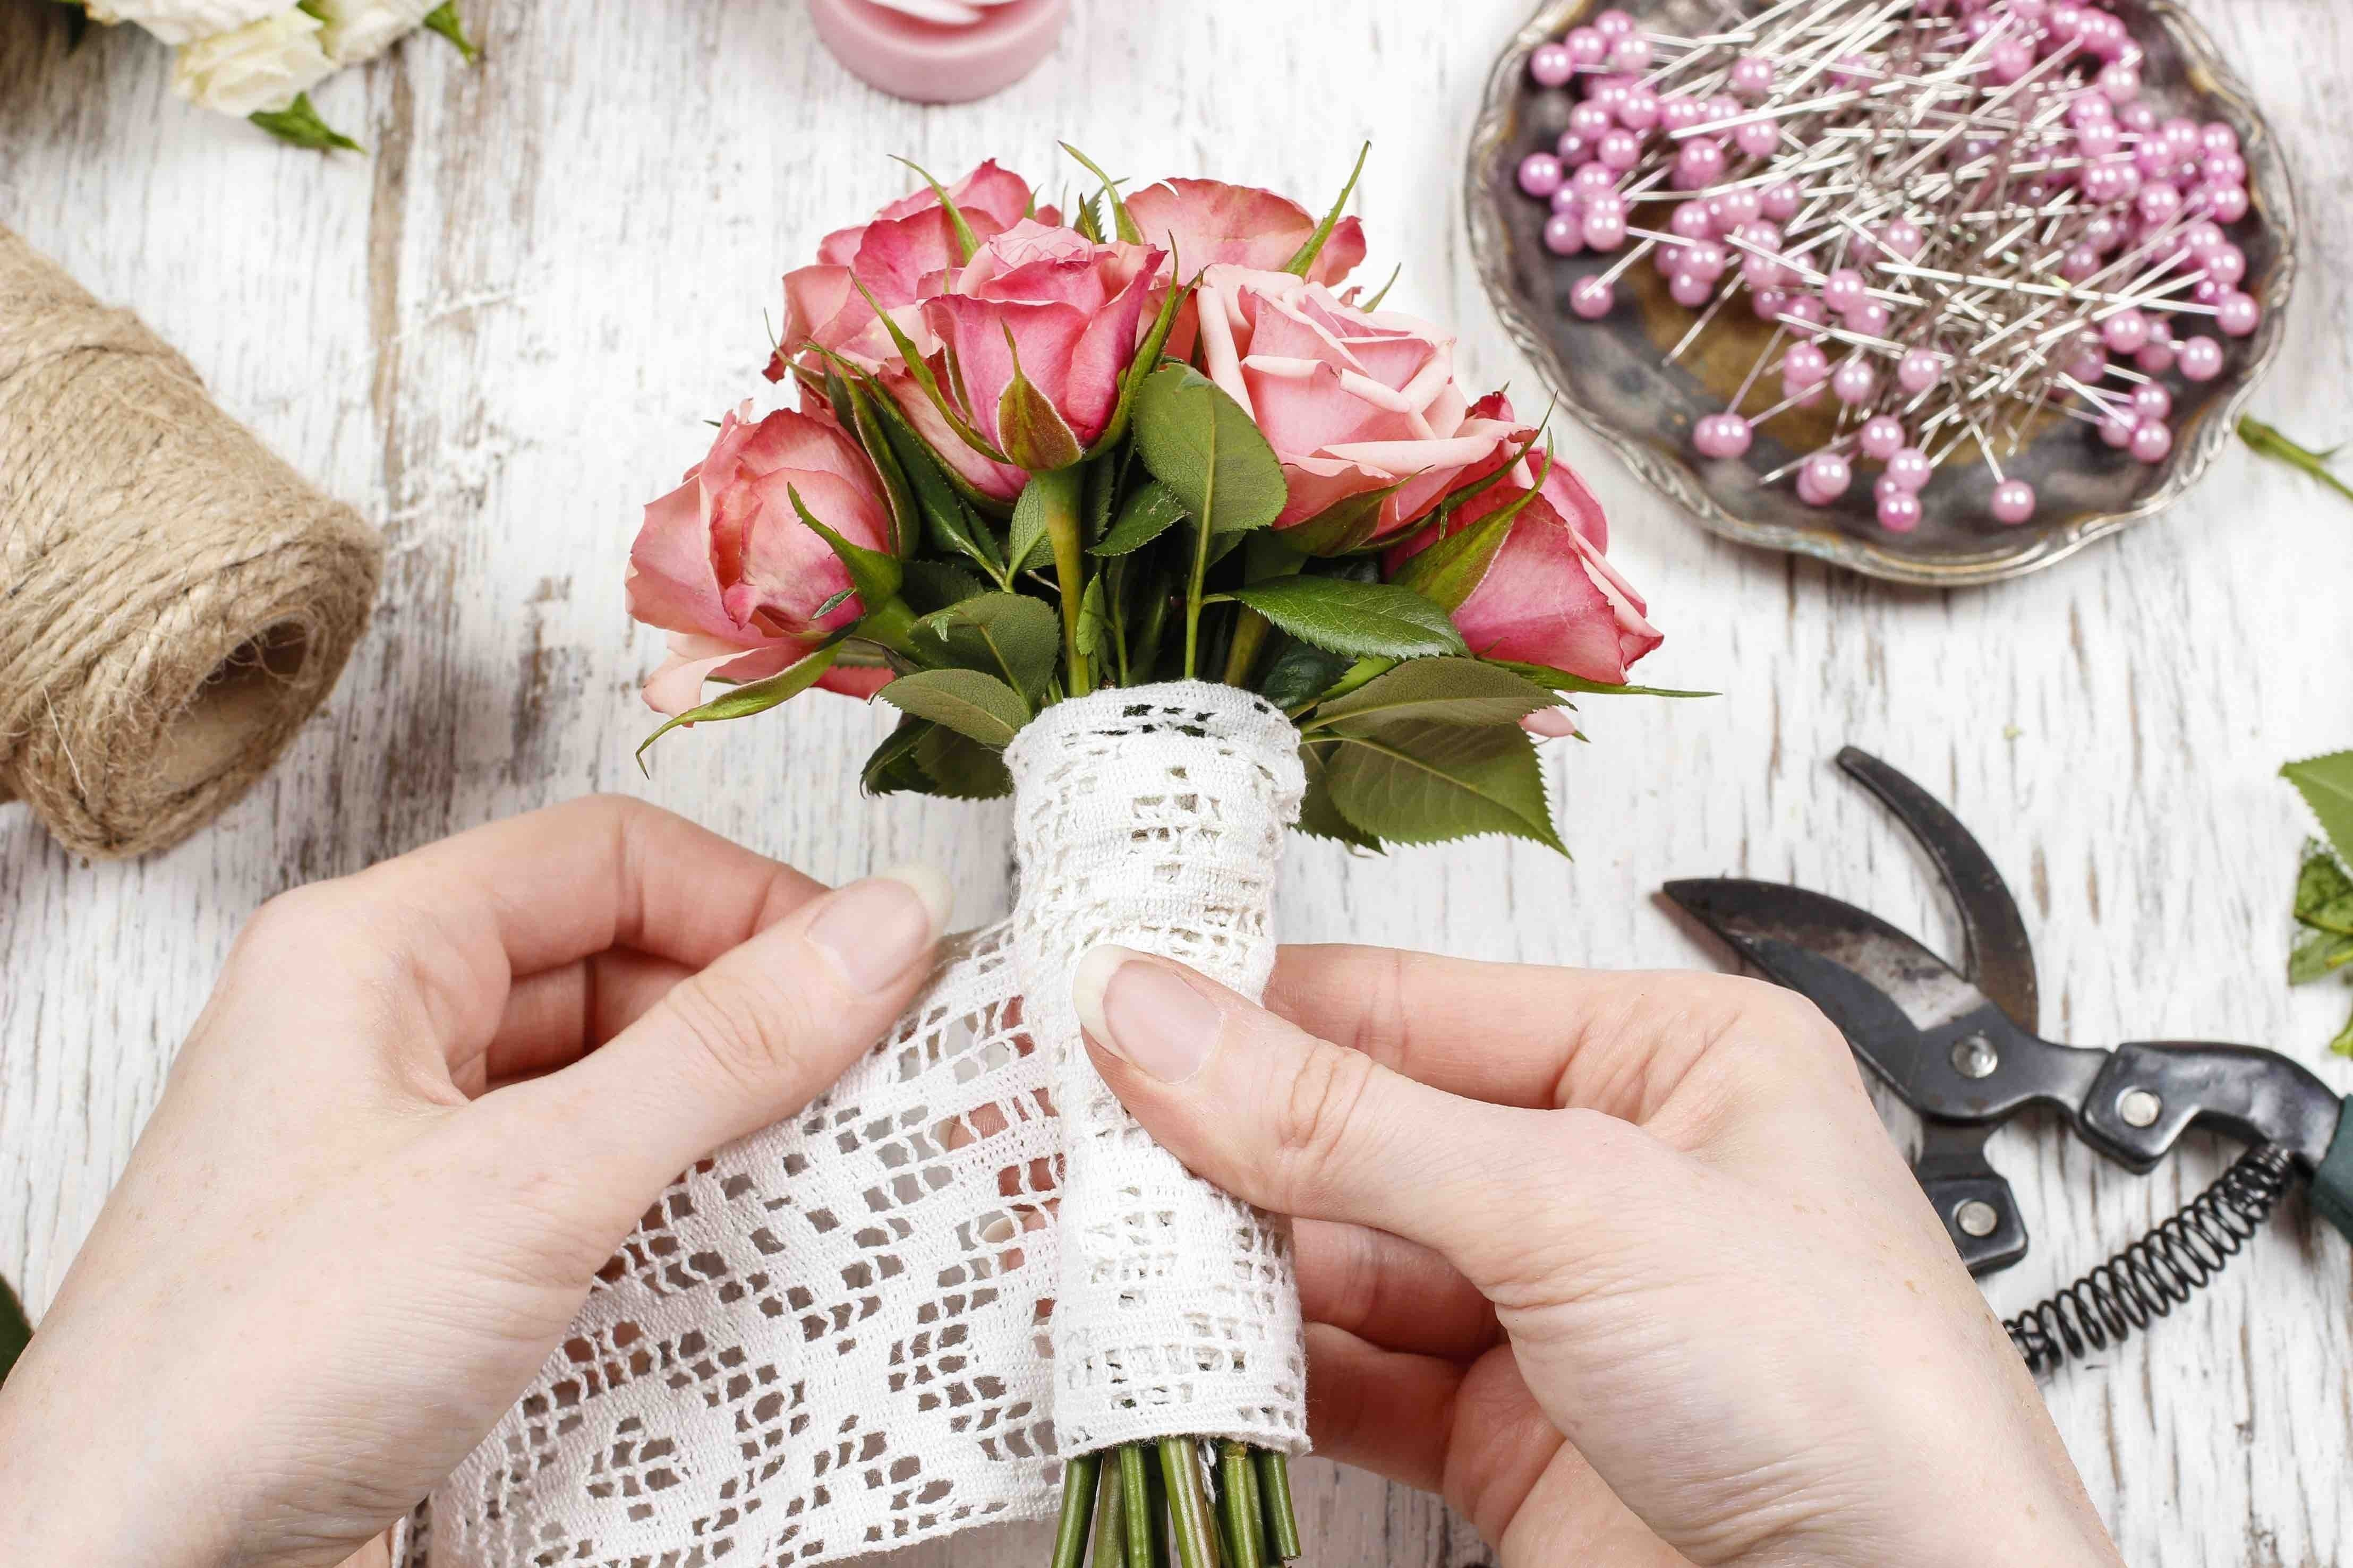 10 Perfect Wedding Ideas On A Tight Budget to plan a wedding on a tight budget 2020